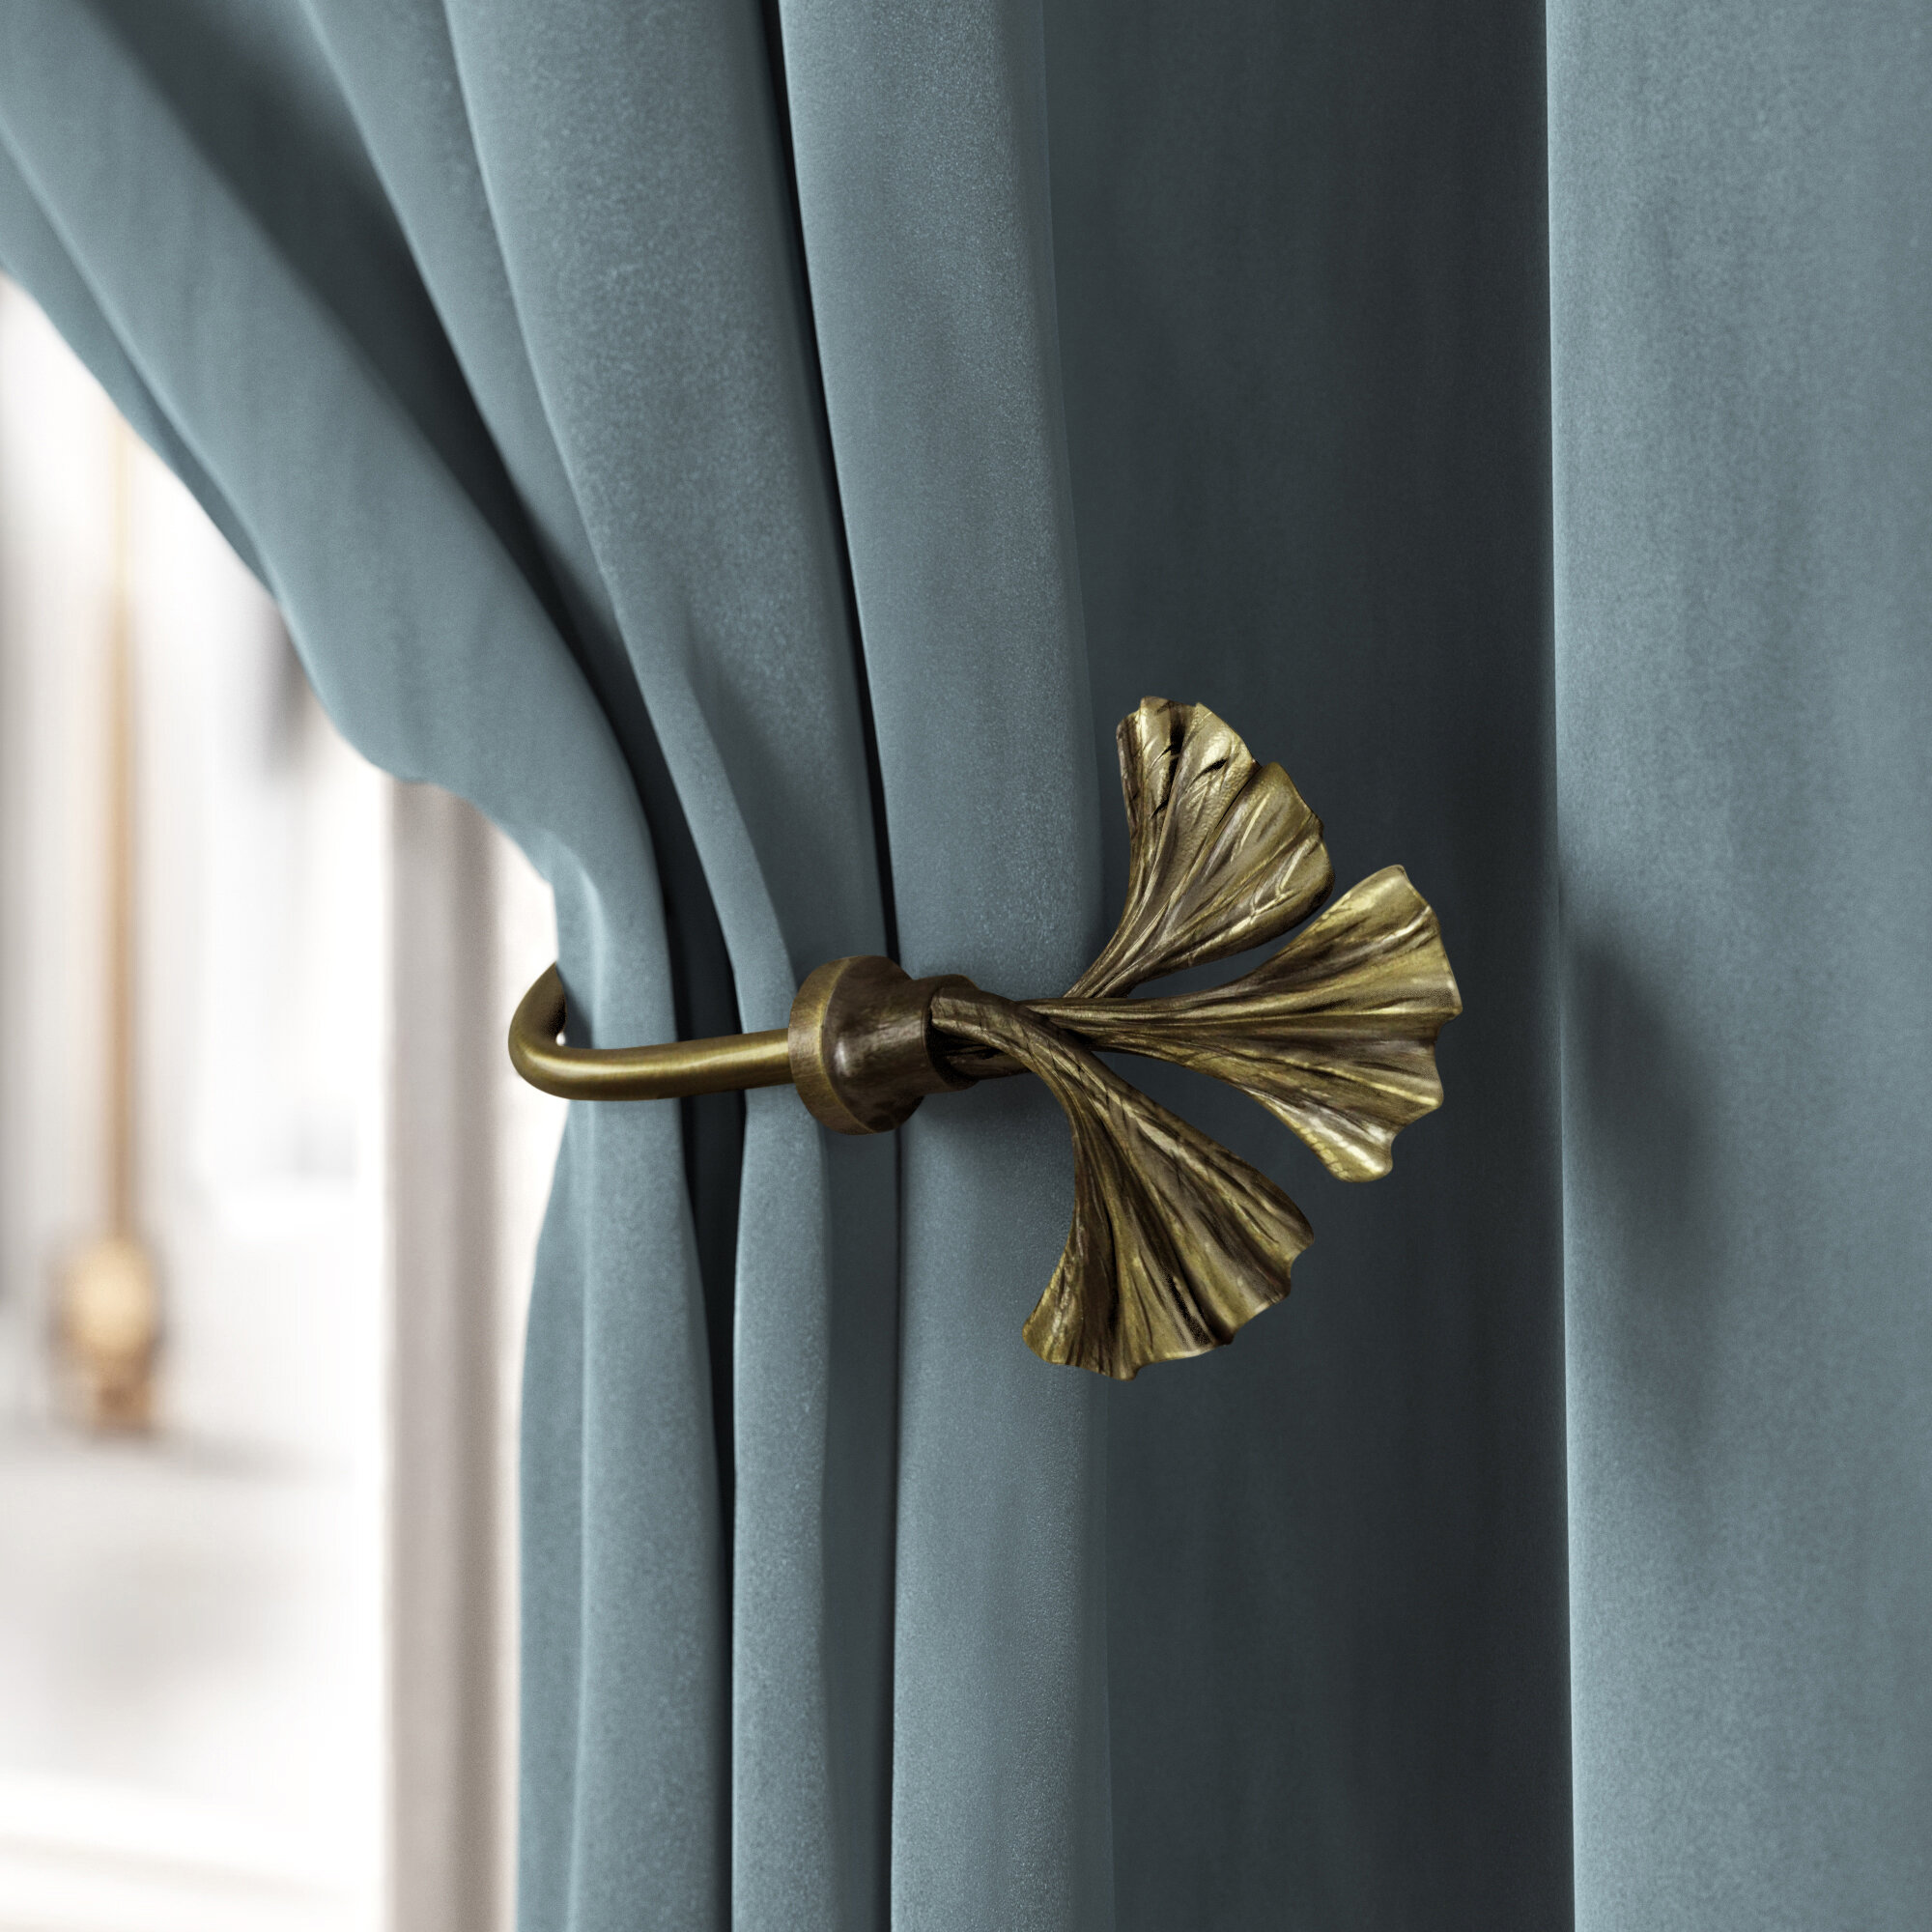 Leaf Rod Curtain Hardware Accessories You Ll Love In 2021 Wayfair